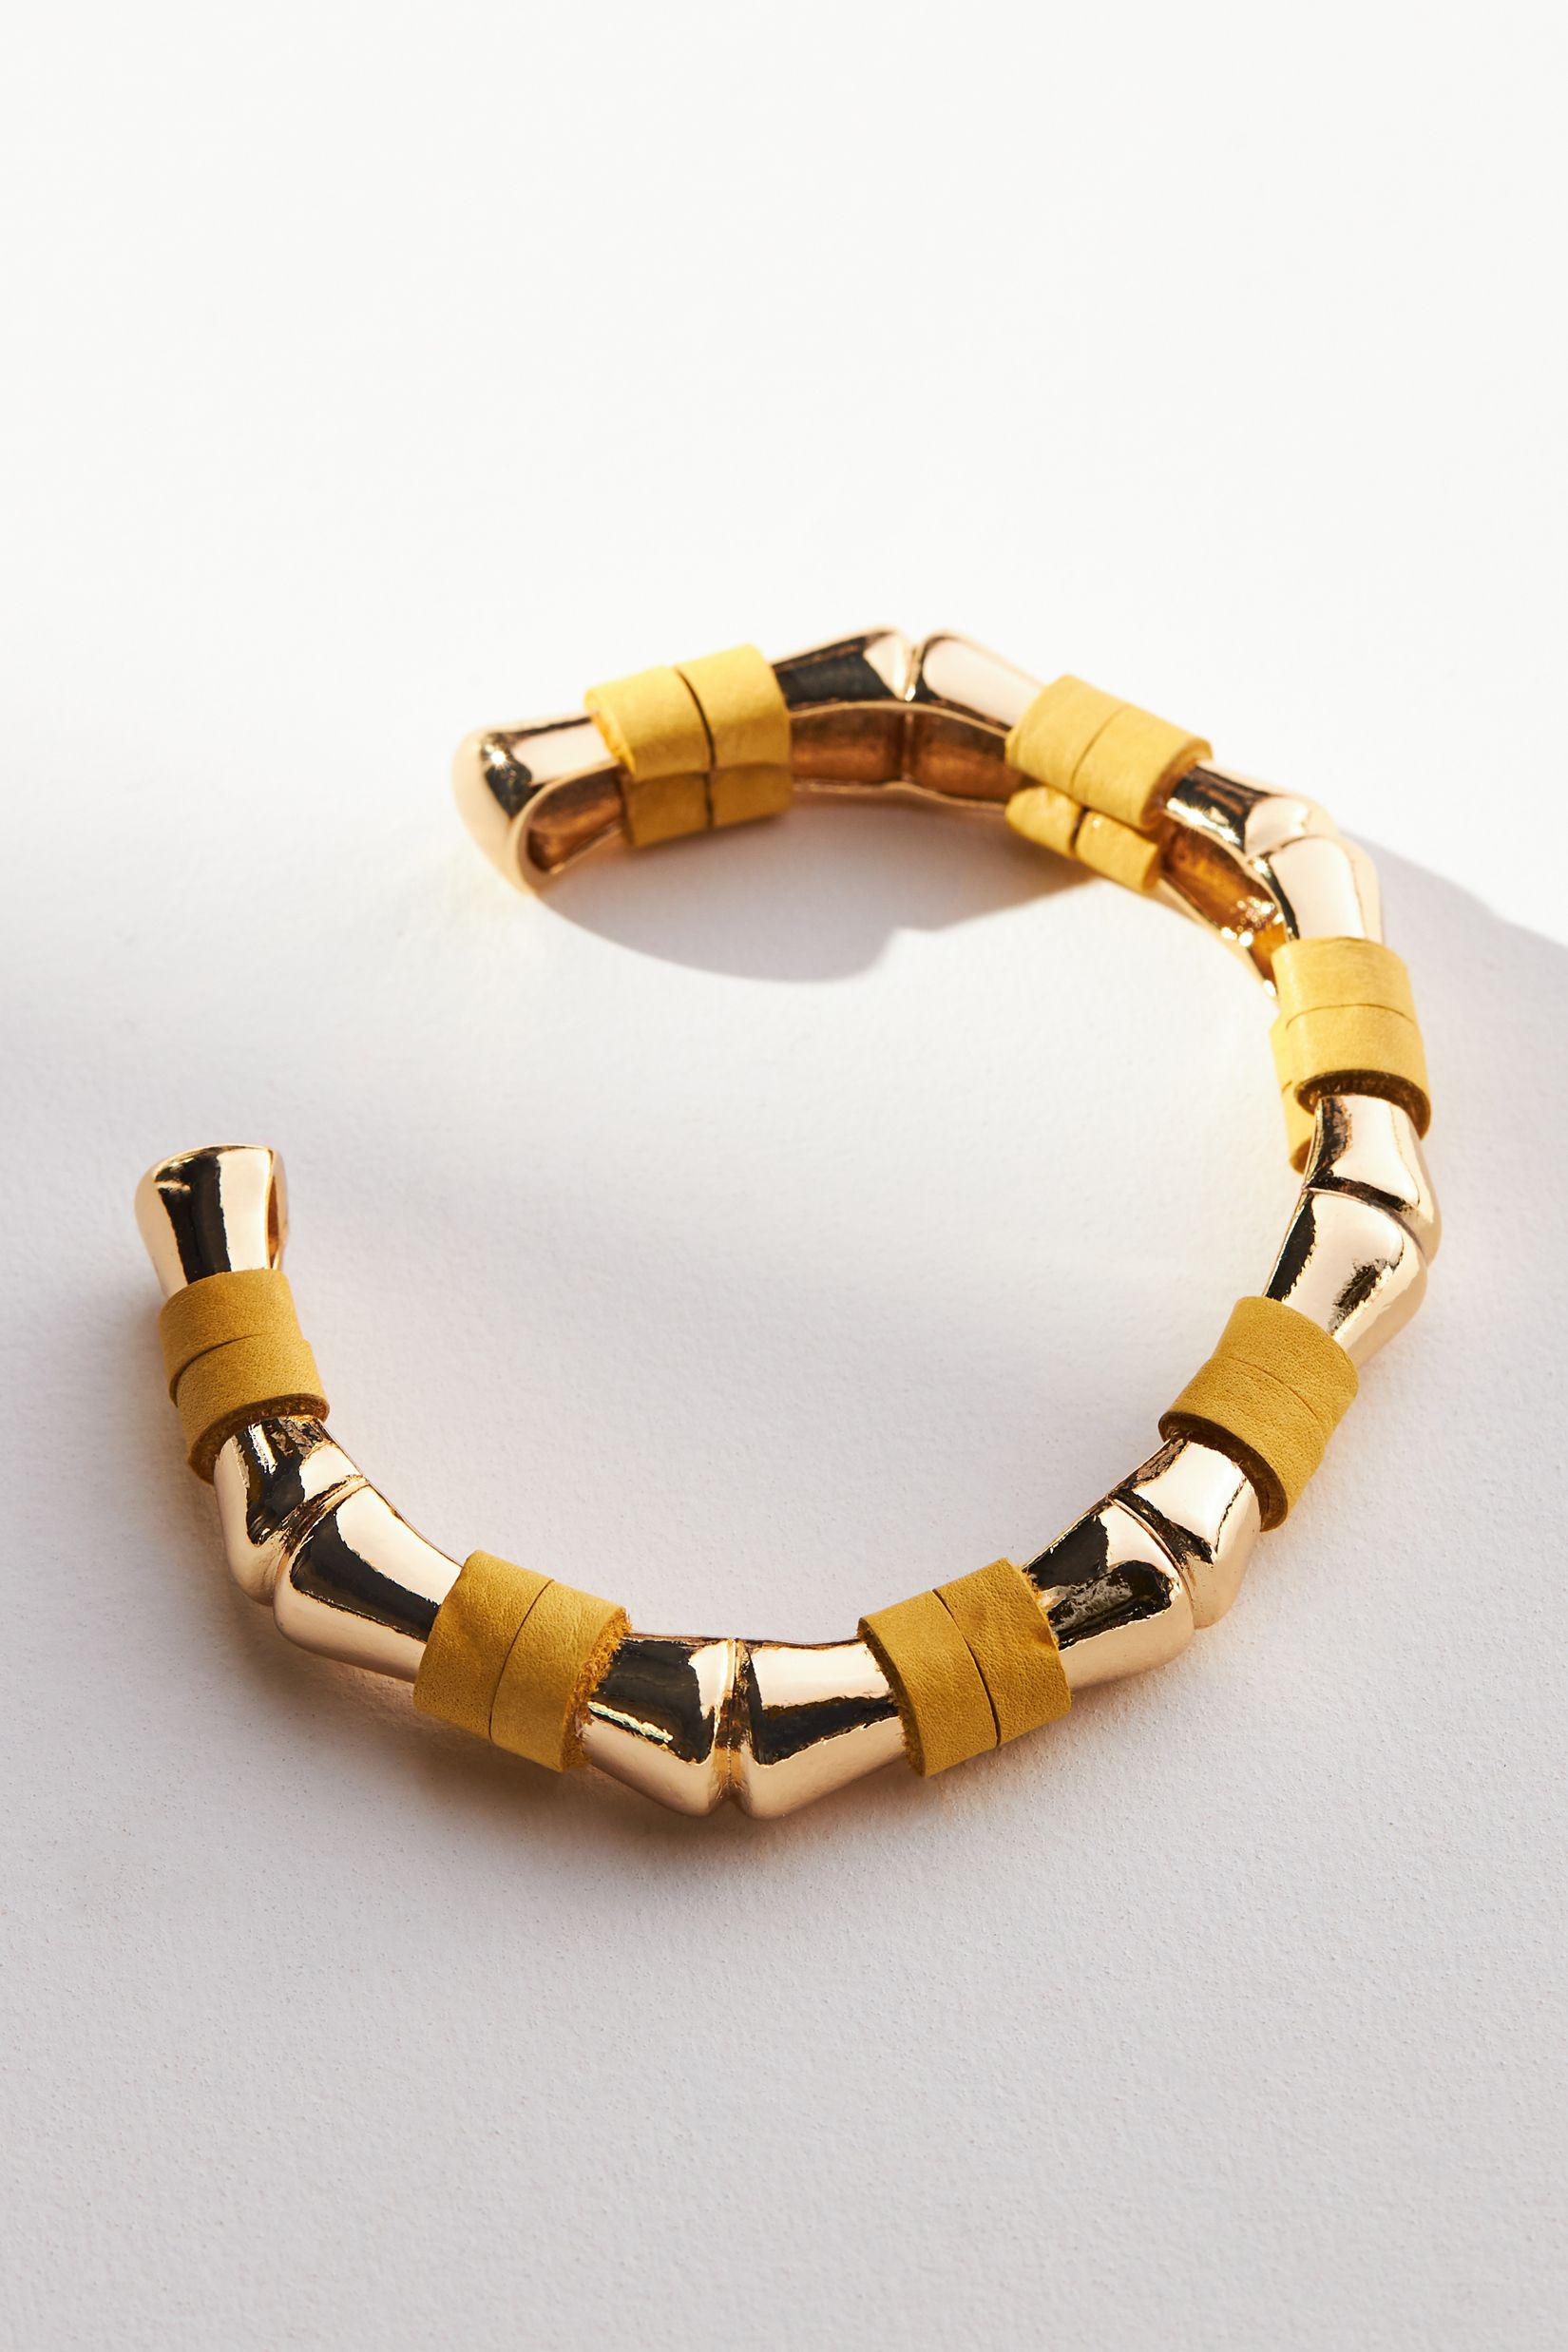 Leather-Wrapped Bamboo Cuff Bracelet